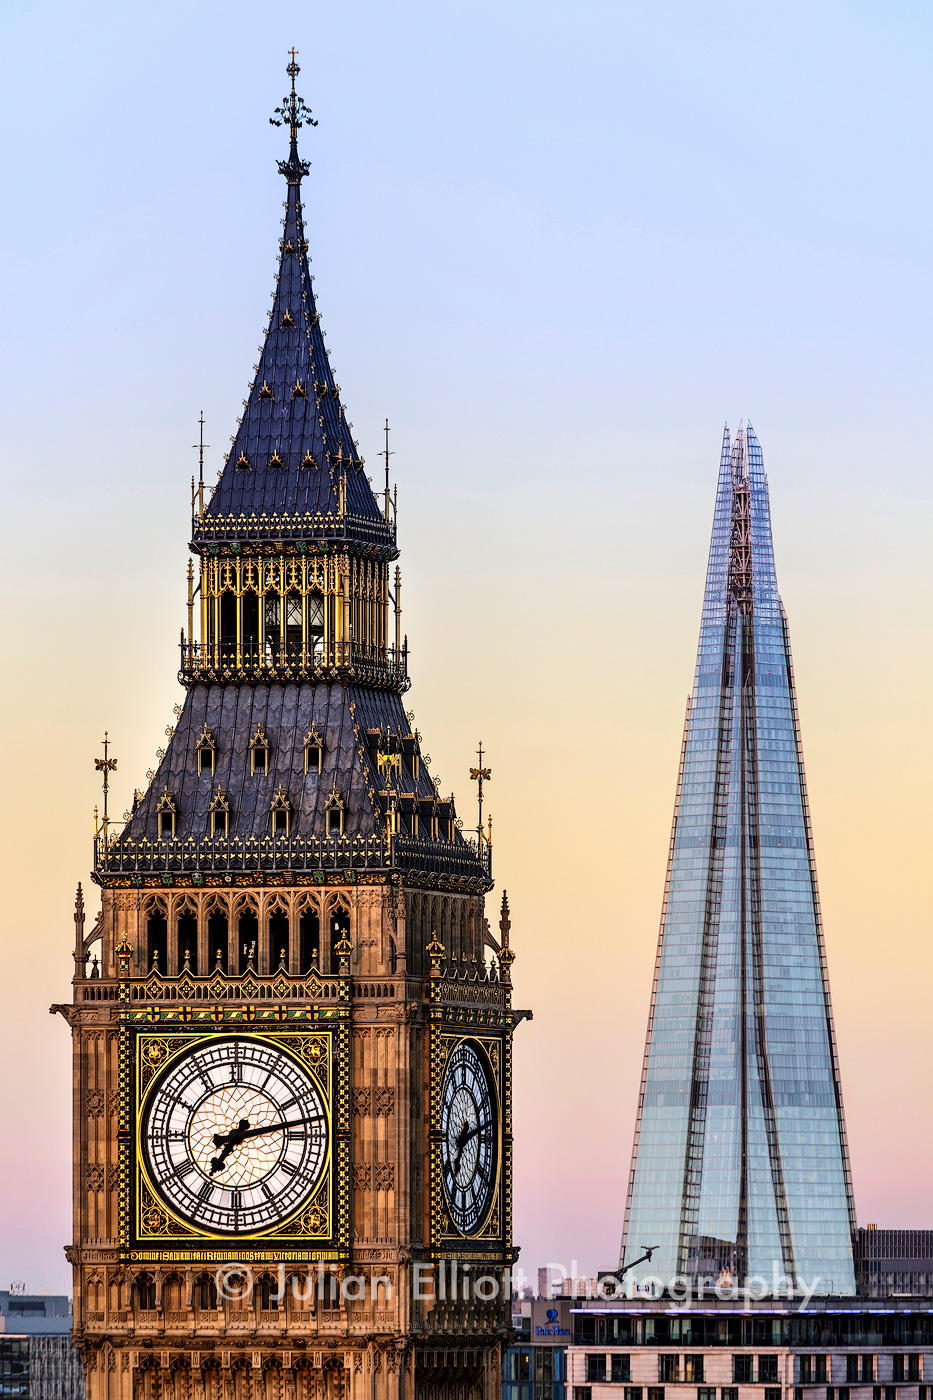 The Elizabeth Tower and The Shard, London.